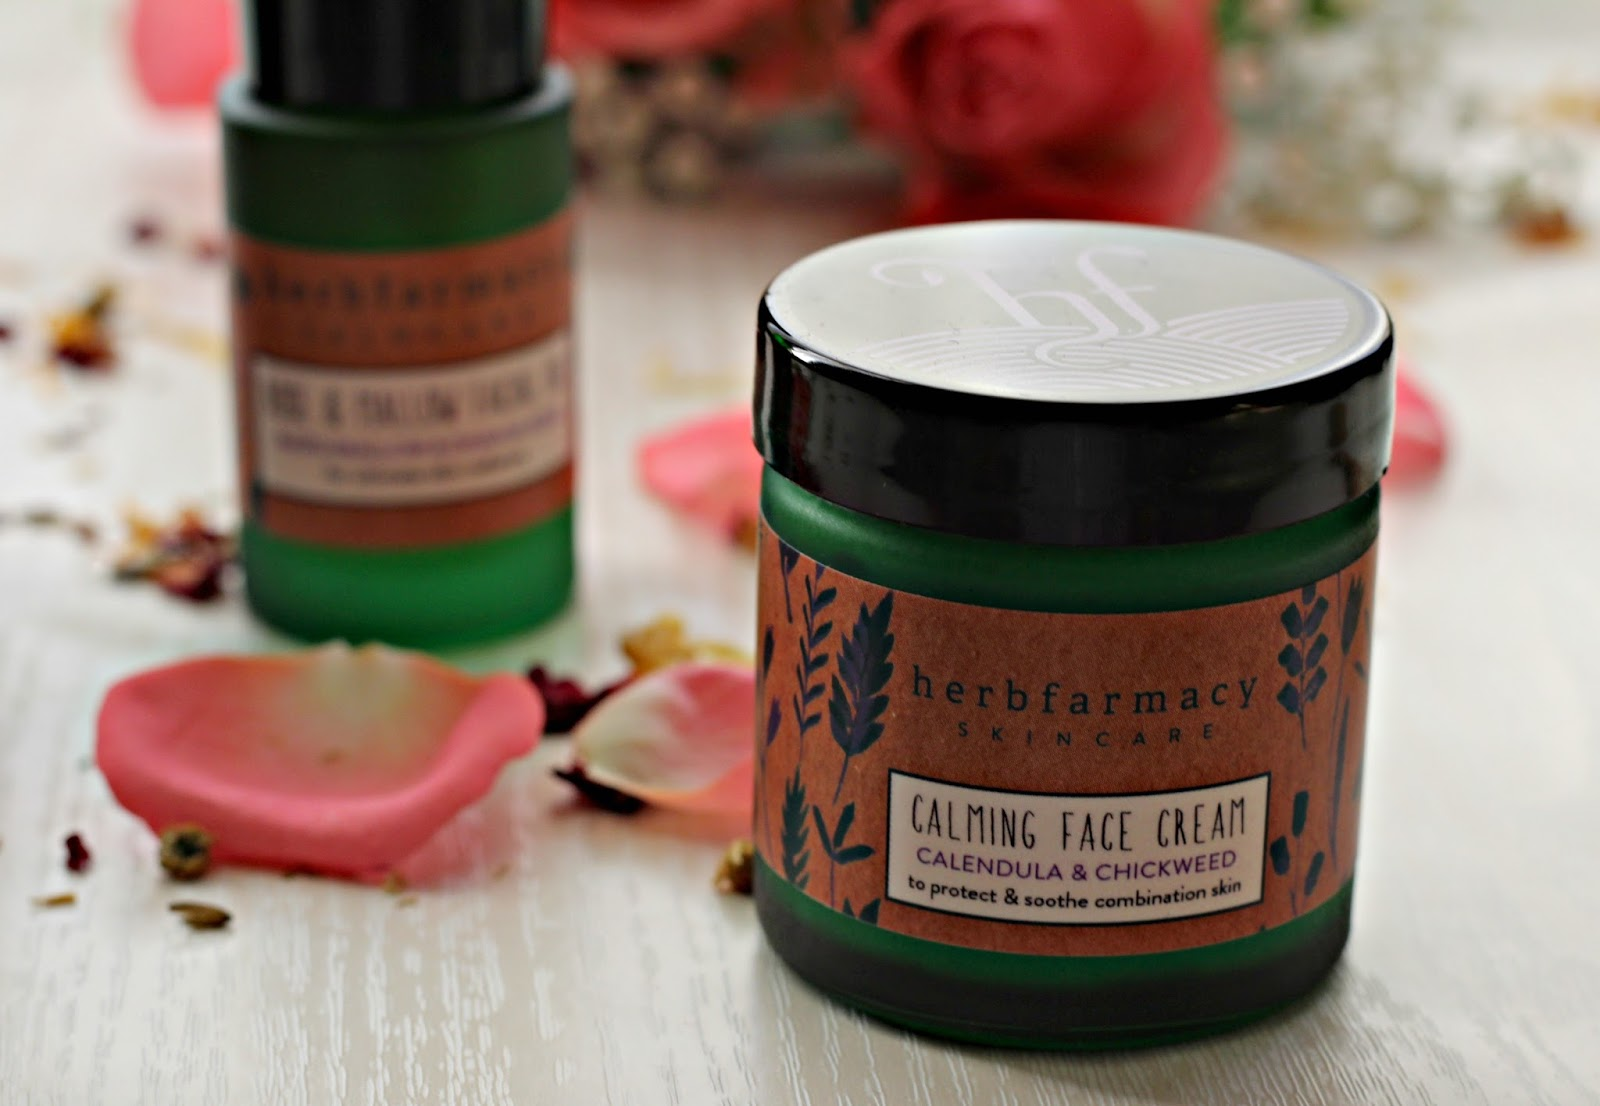 Herbfarmacy Calming Face cream review